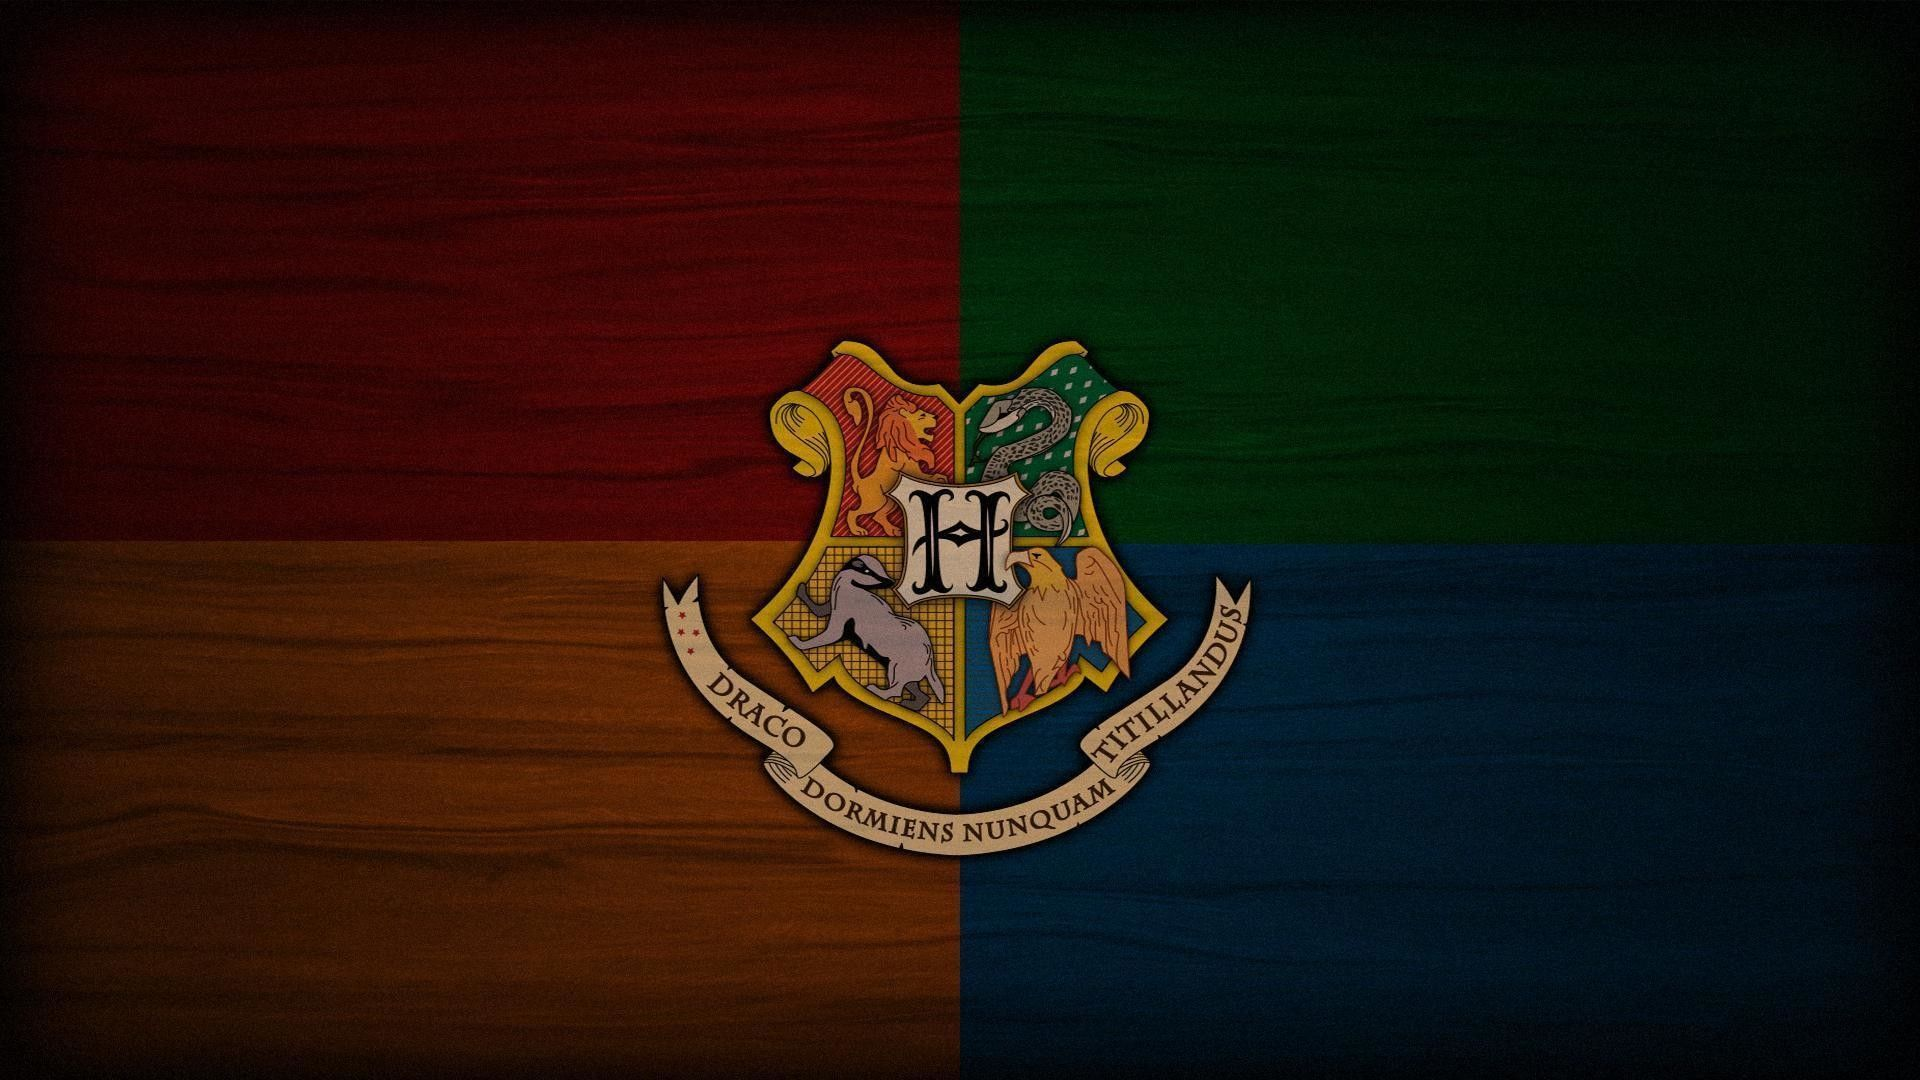 Hogwarts Wallpaper Hd 64 Images Desktop Wallpaper Harry Potter Slytherin Wallpaper Harry Potter Iphone Wallpaper